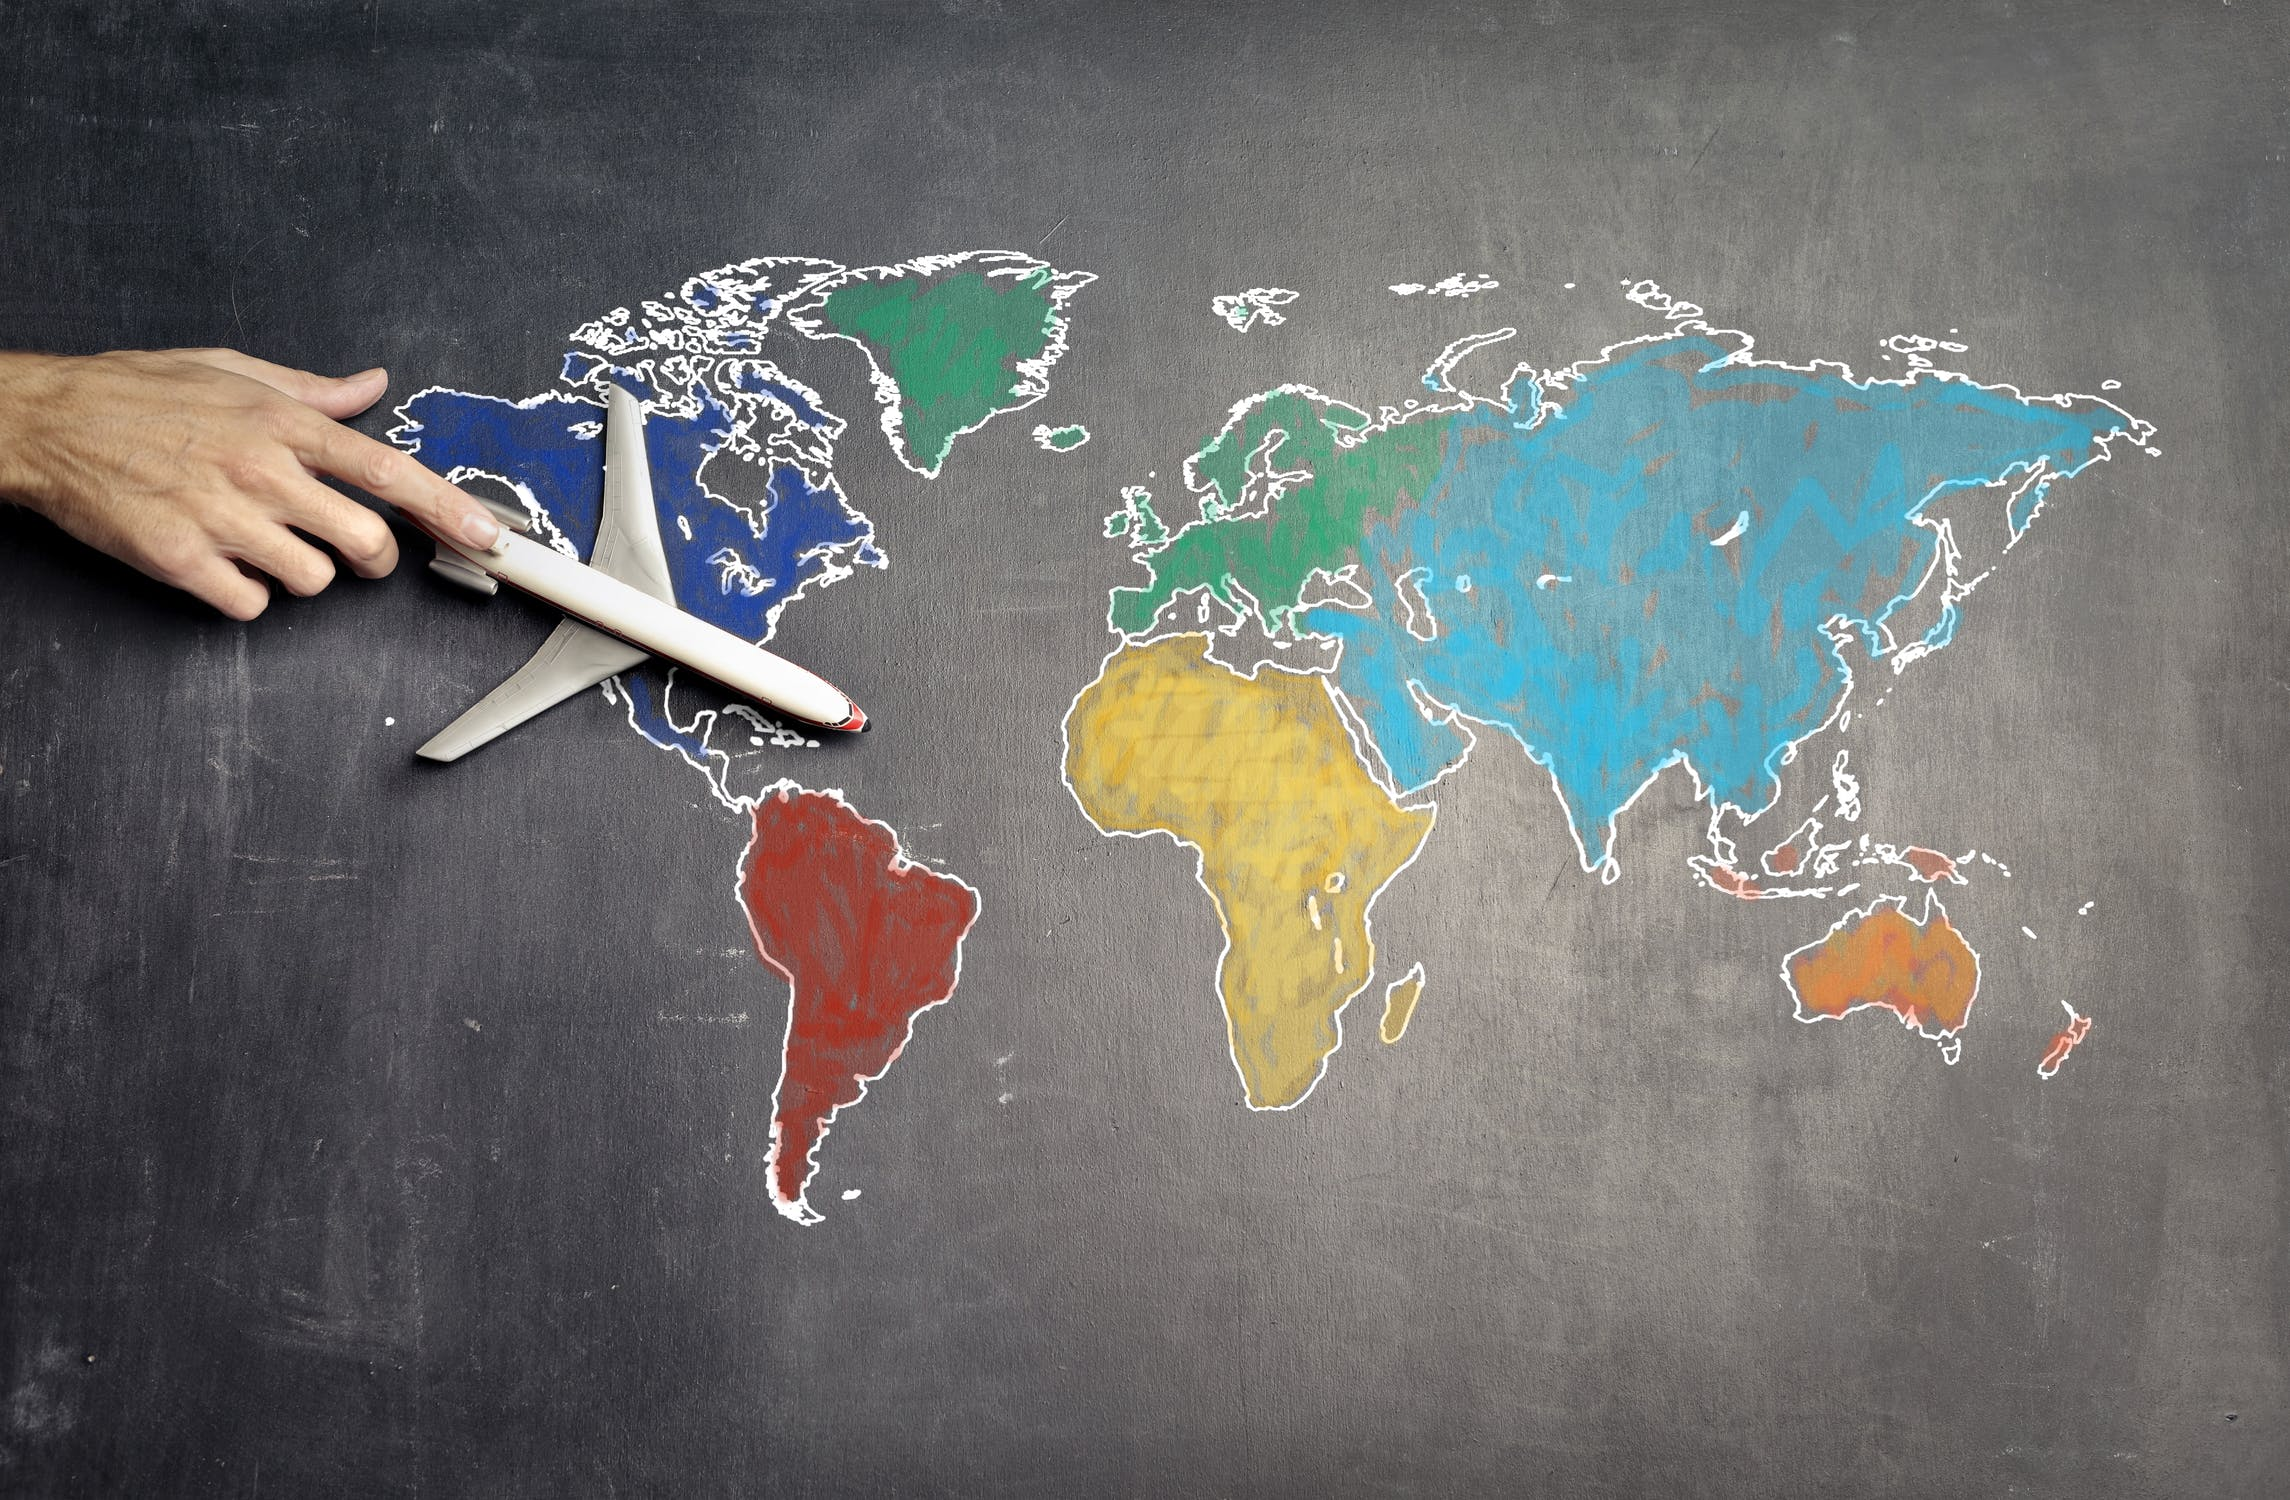 Exploring business opportunities in different countries